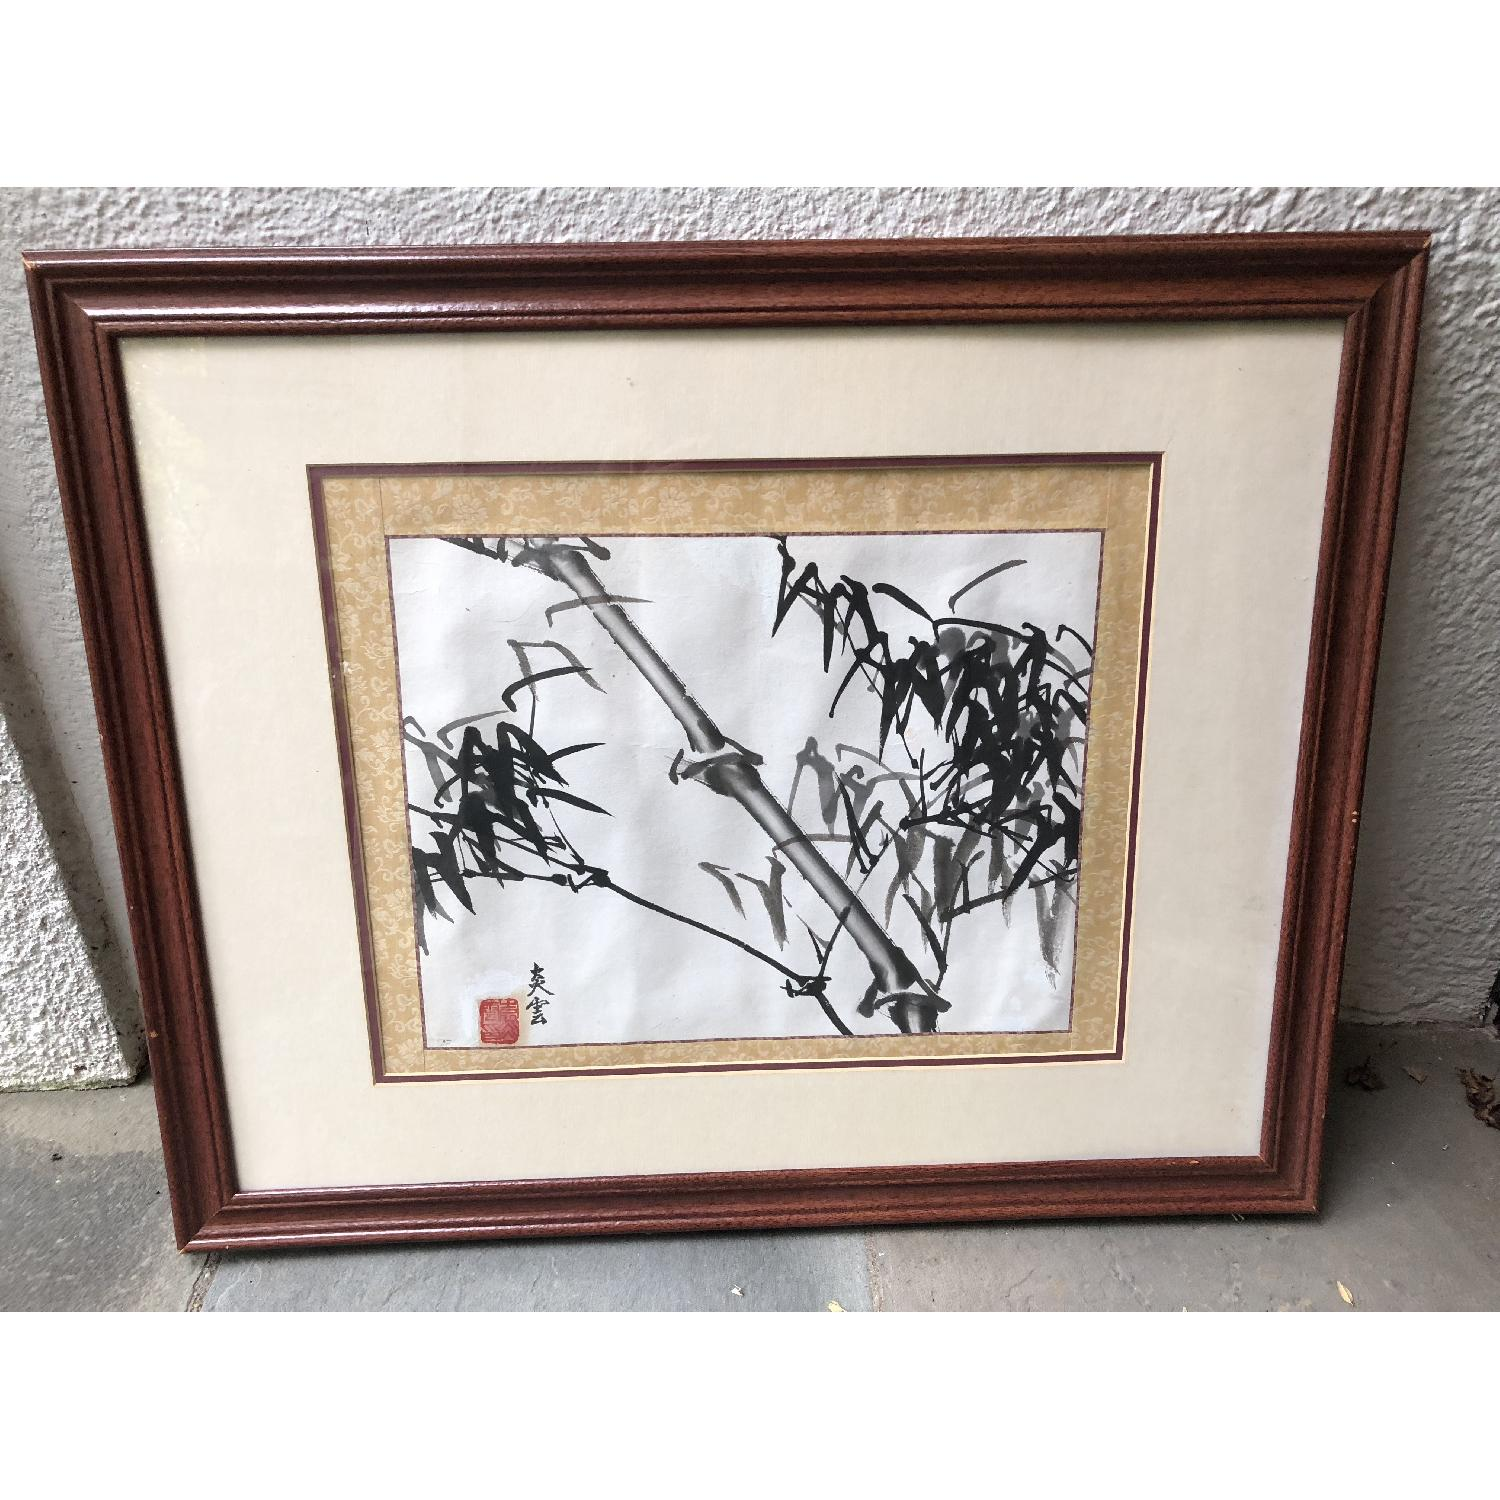 Framed Antique Chinese Ink Painting of Bamboo